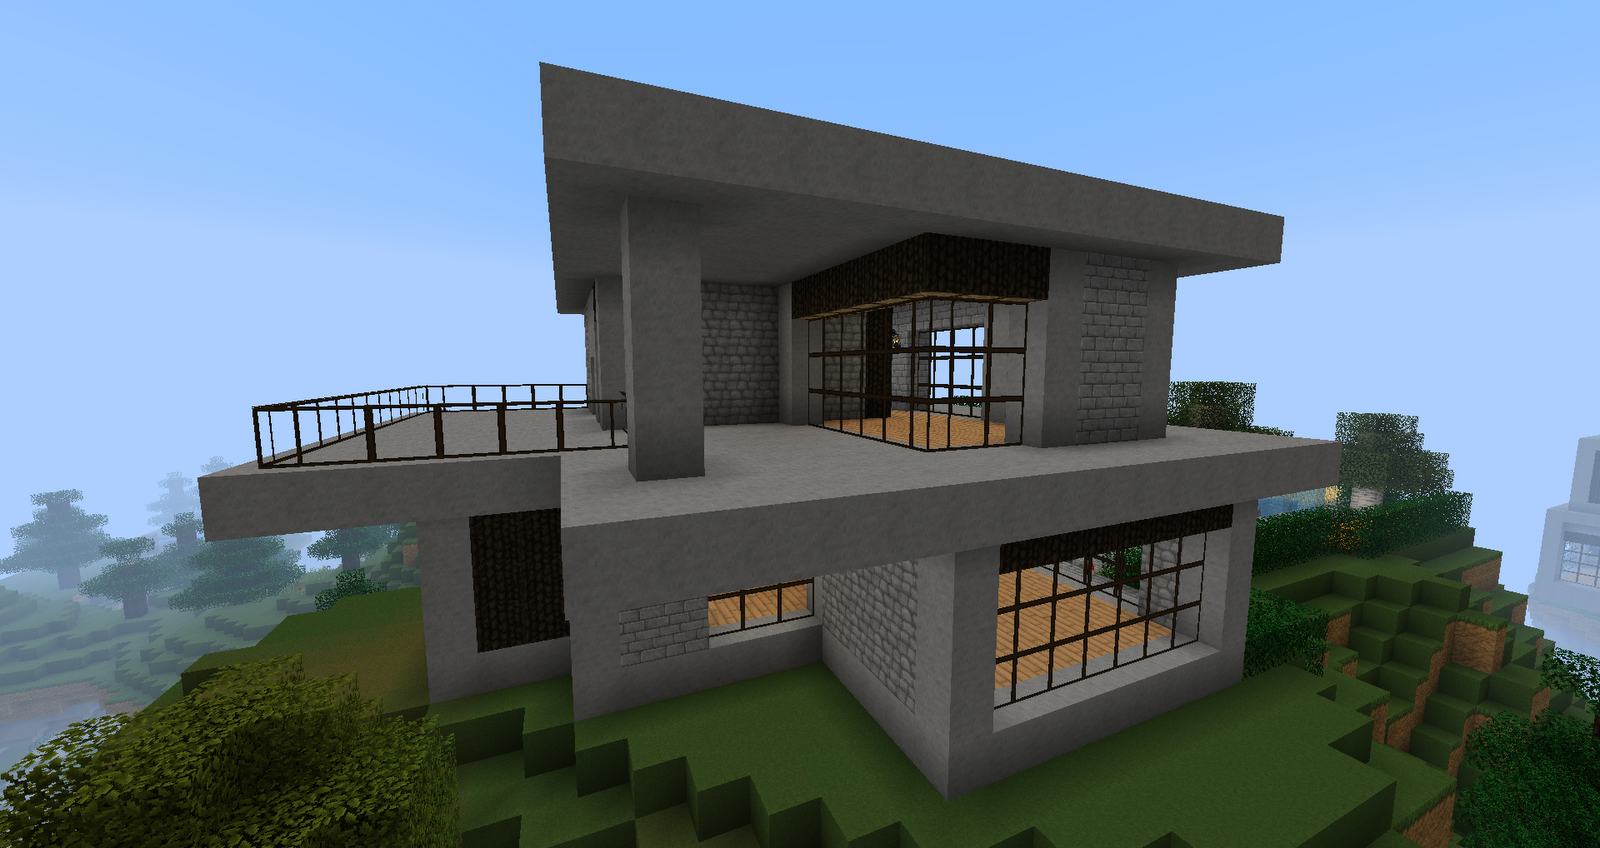 Ruked on minecraft modern house schematics 02 small - Minecraft design house ...